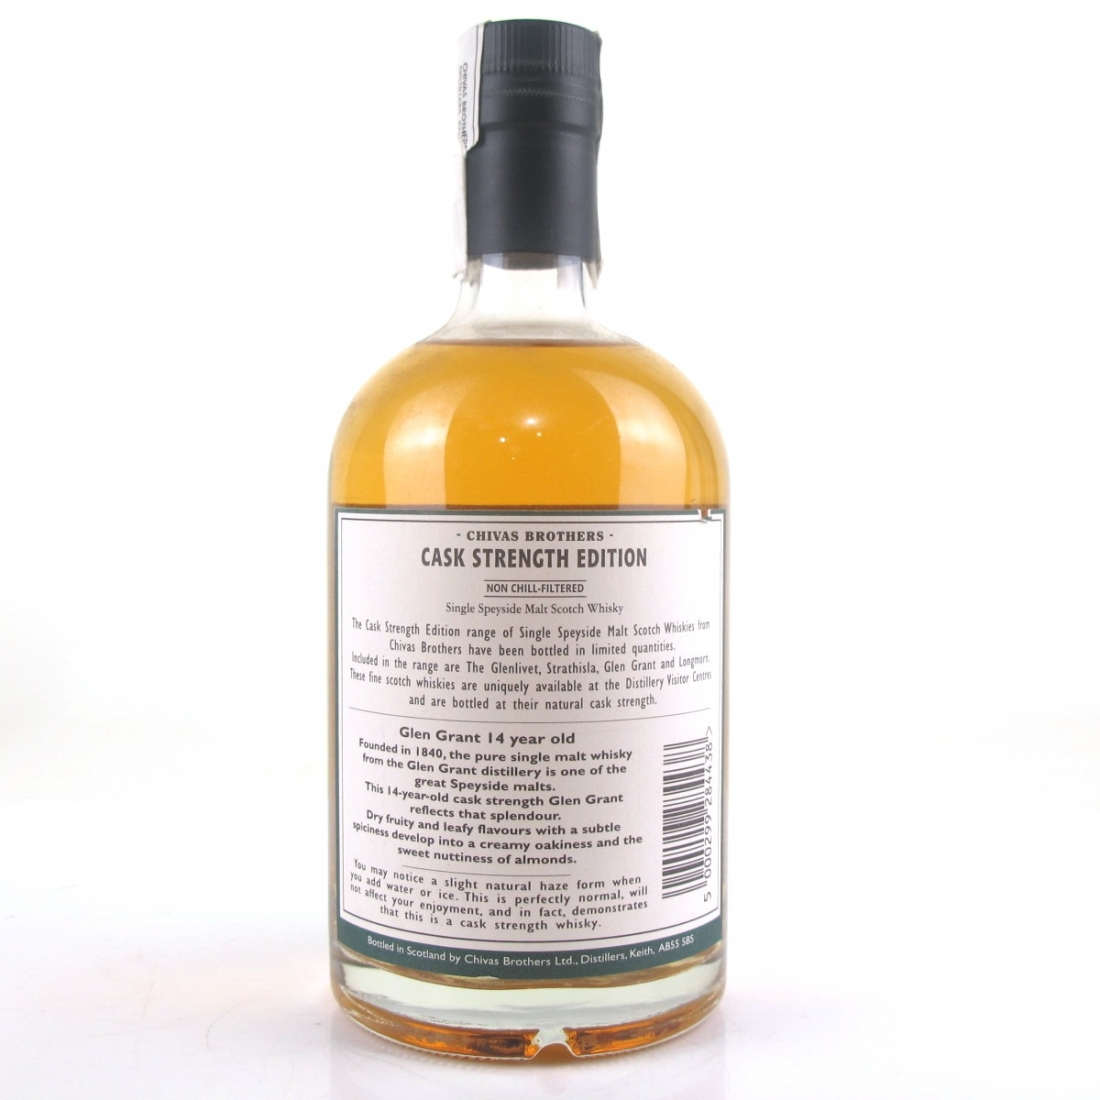 Glen Grant 1990 Cask Strength 14 Year Old / Distillery Exclusive